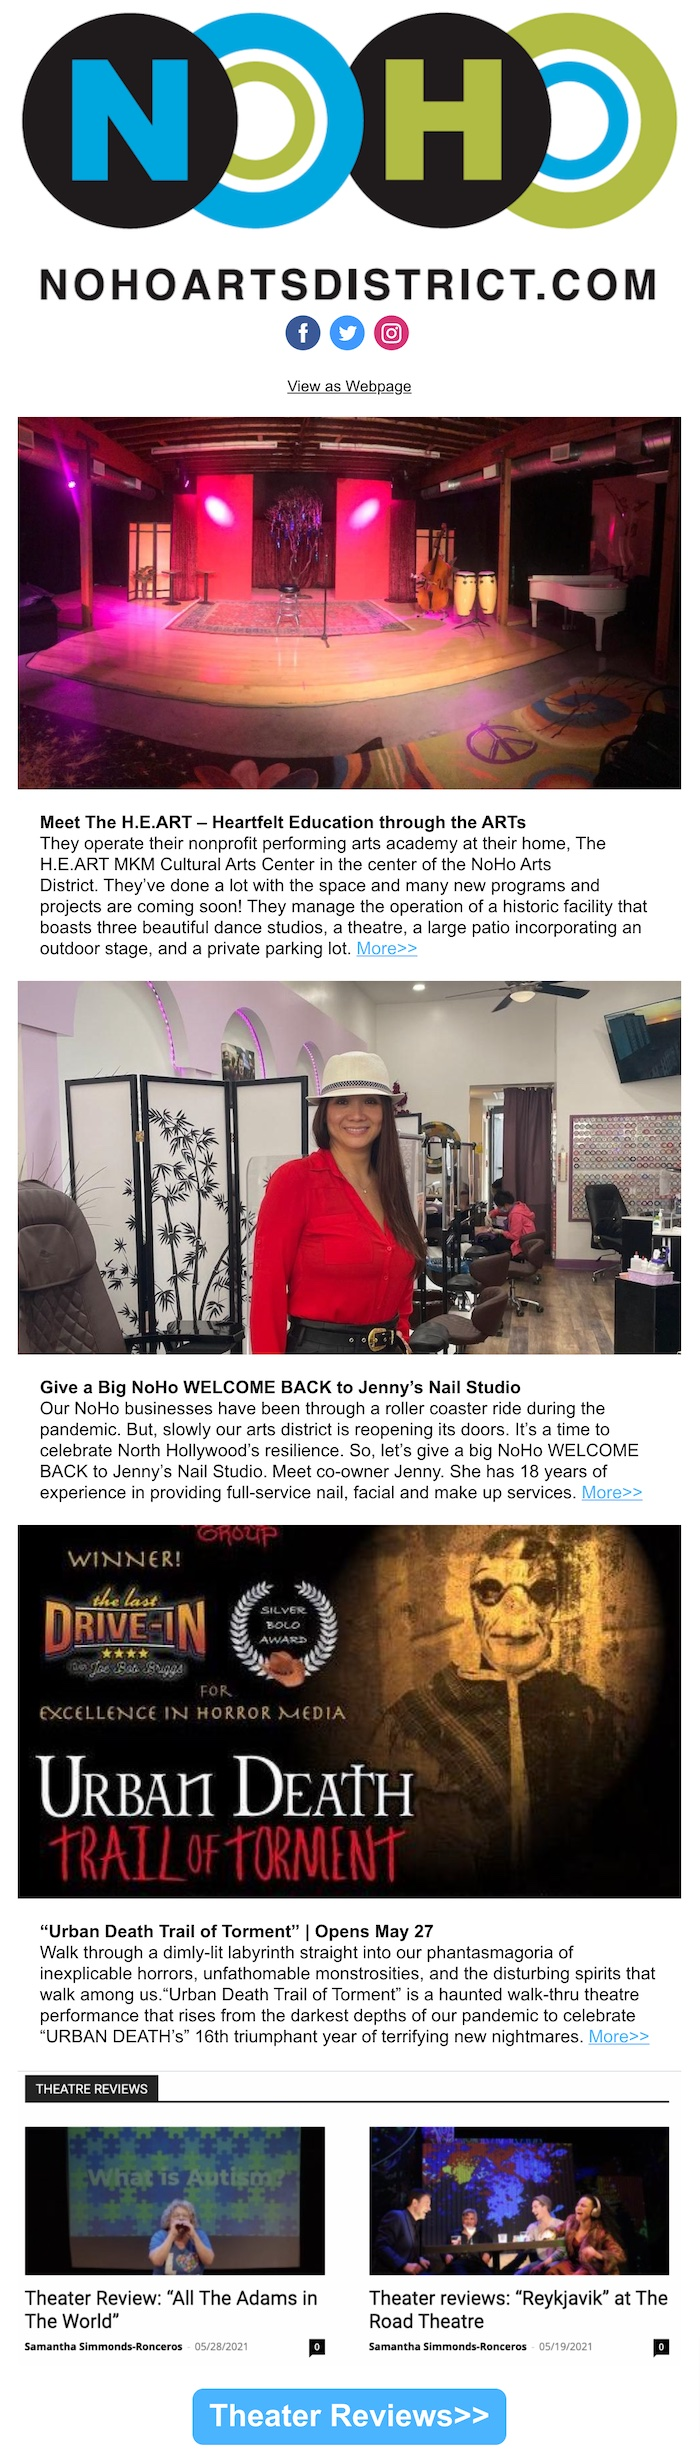 """NoHo News: The H.E.ART MKM Cultural Arts Center. Female Film Directors You Should Know. Jenny's Nail Studio. Urban Death Trail of Torment. The """"Magic"""" of Reykjavík. Dim Sum at Tamashii. NoHo Vaccines. #KeepNoHoArtsy."""